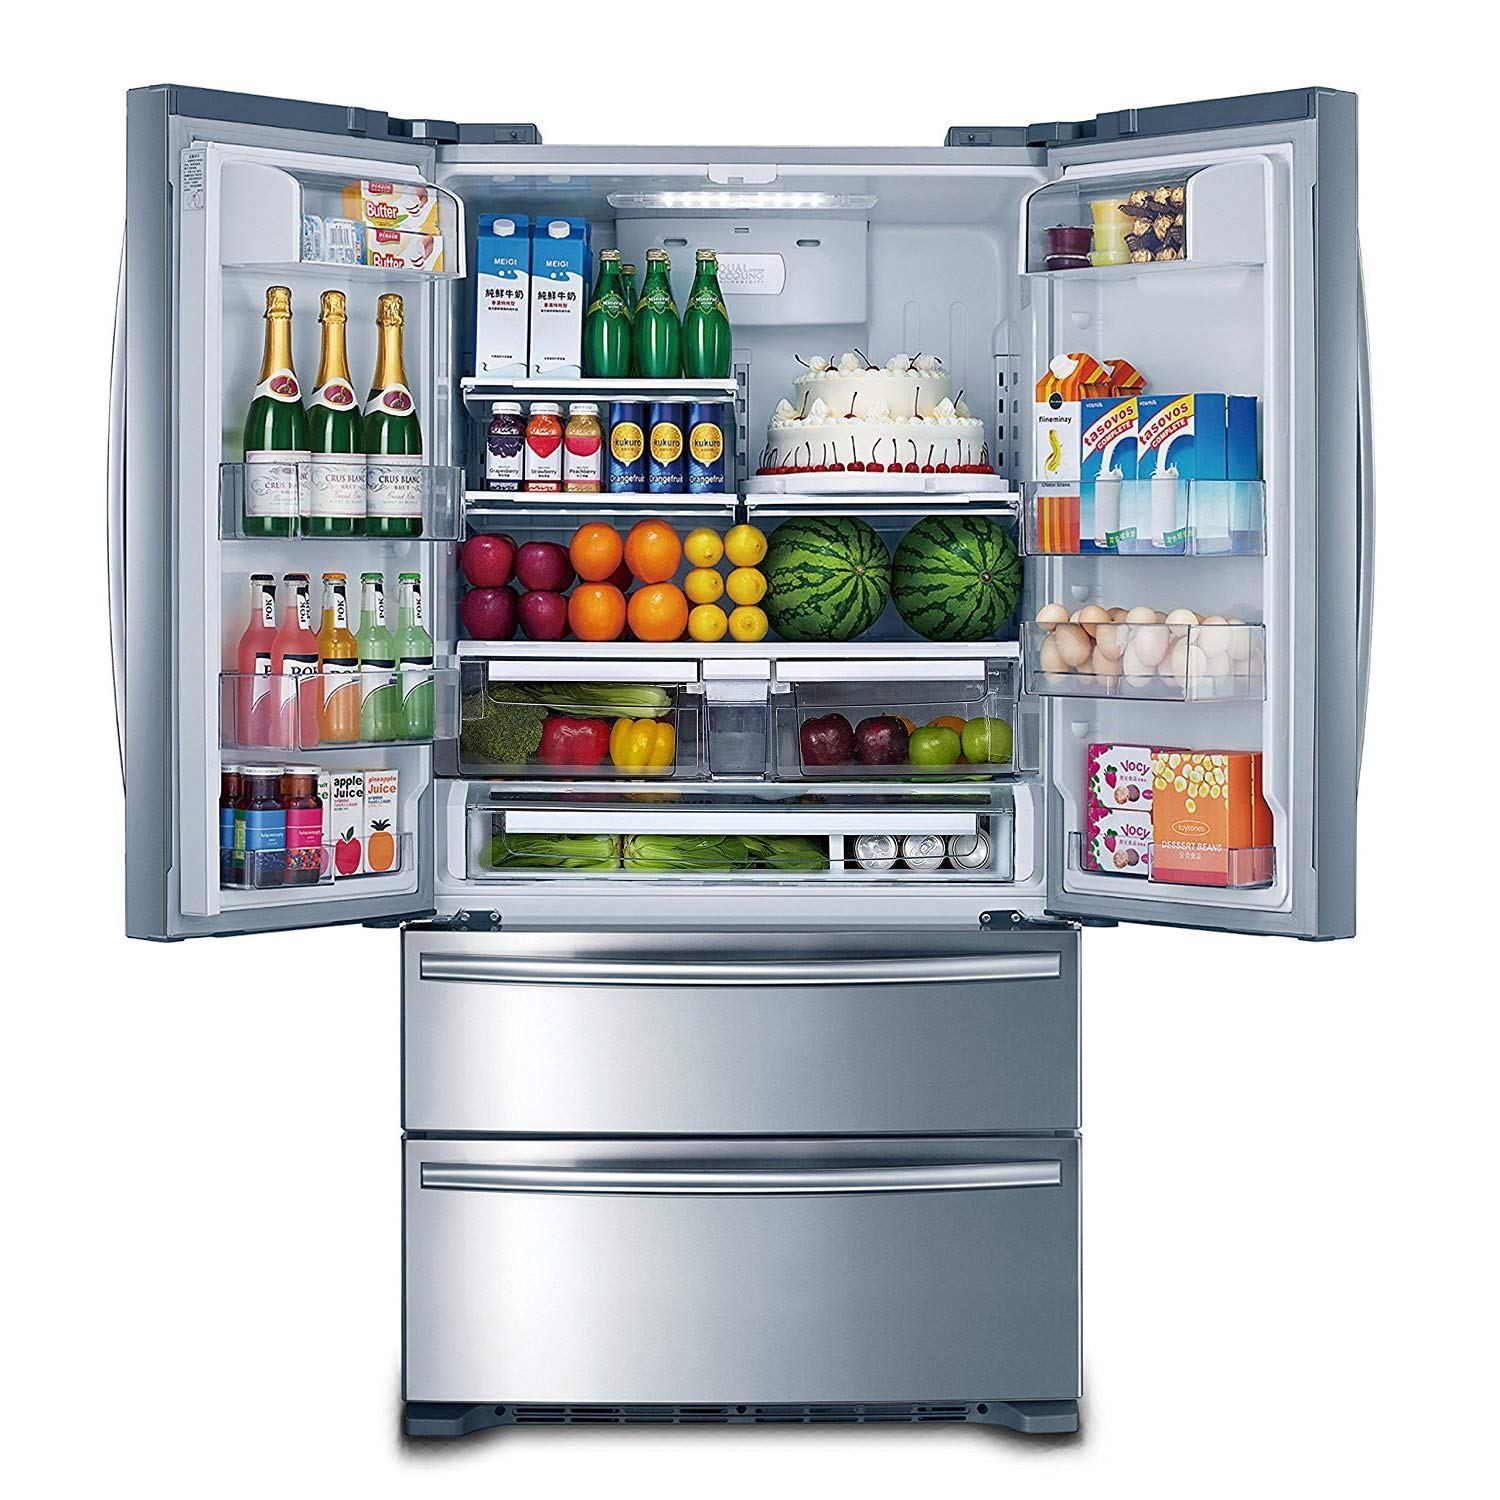 Top 10 Best Counter Depth Refrigerators in 2019 – Complete Reviews